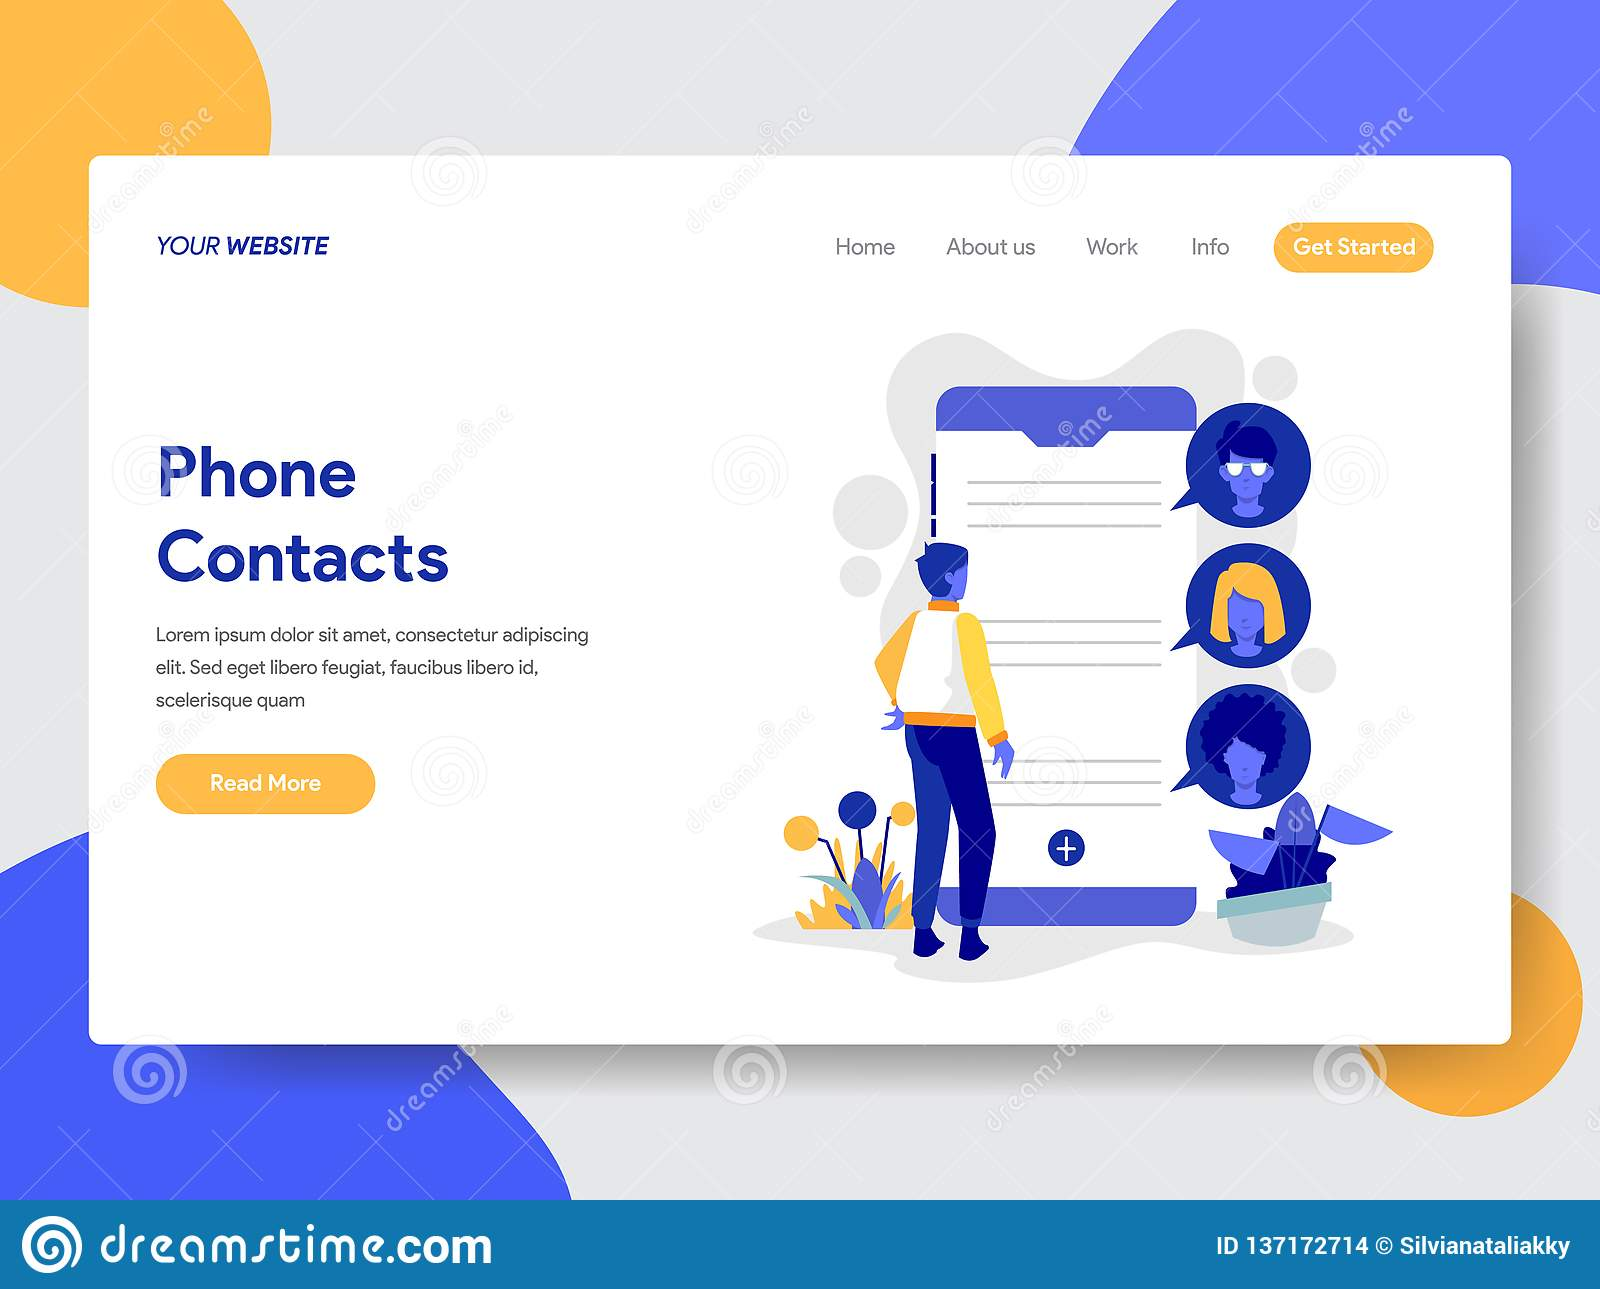 Landing page template of Phone Contacts Illustration Concept. Modern flat design concept of web page design for website and mobile